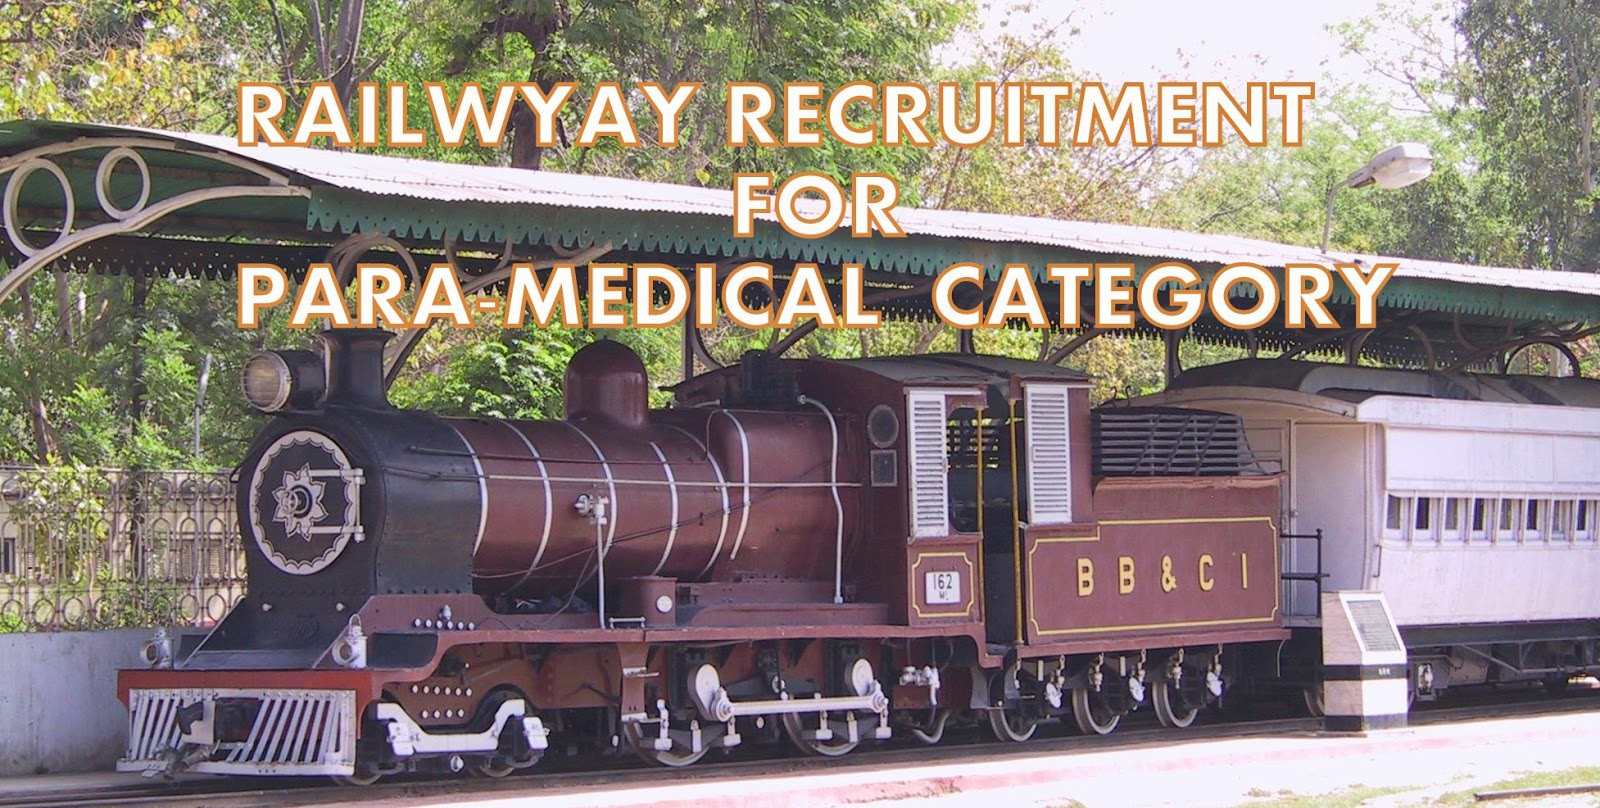 RAILWAY RECRUITMENT AND RAILWAY JOBS